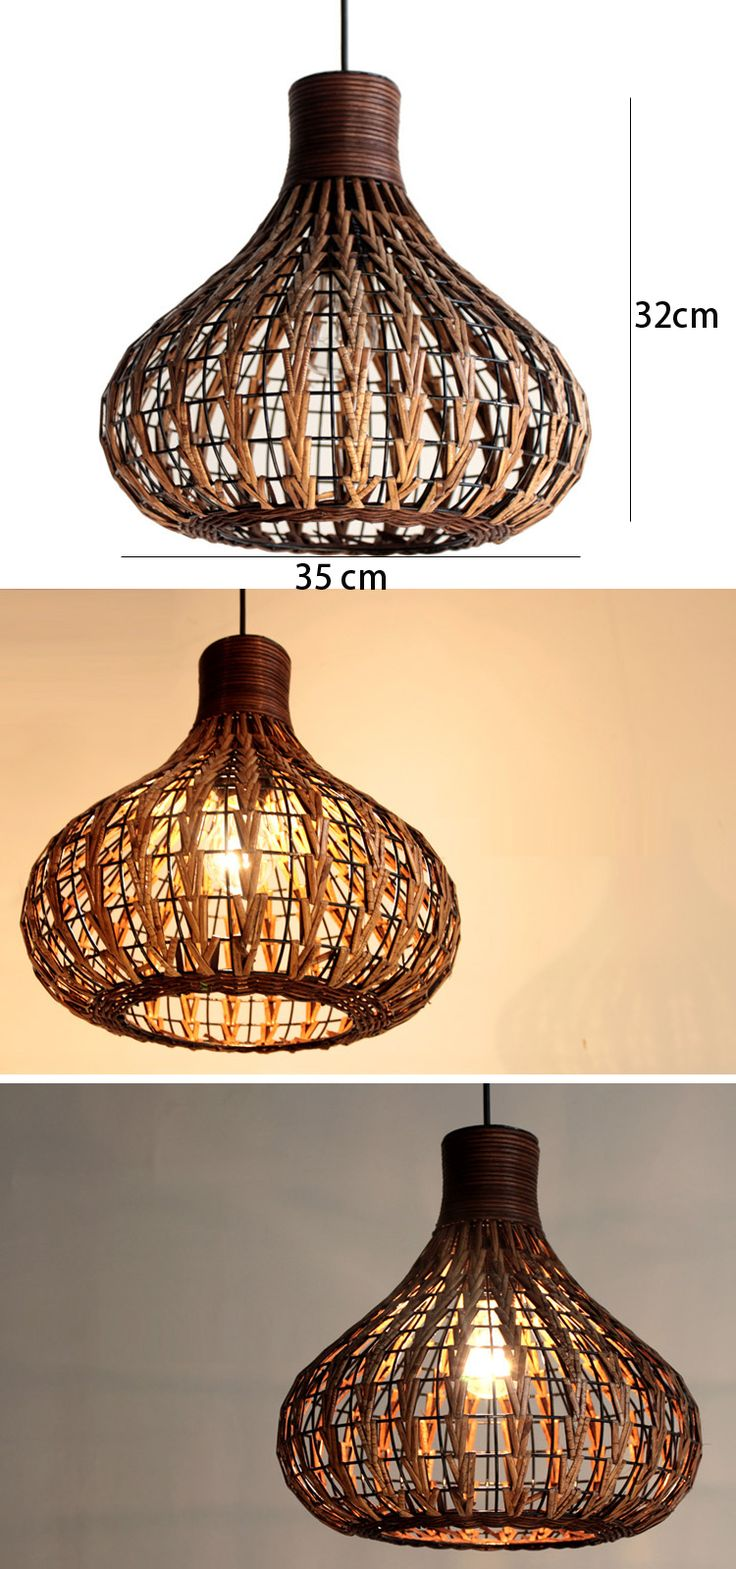 Southeast Asia Rattan Garlic Dining Room Ceiling Pendant